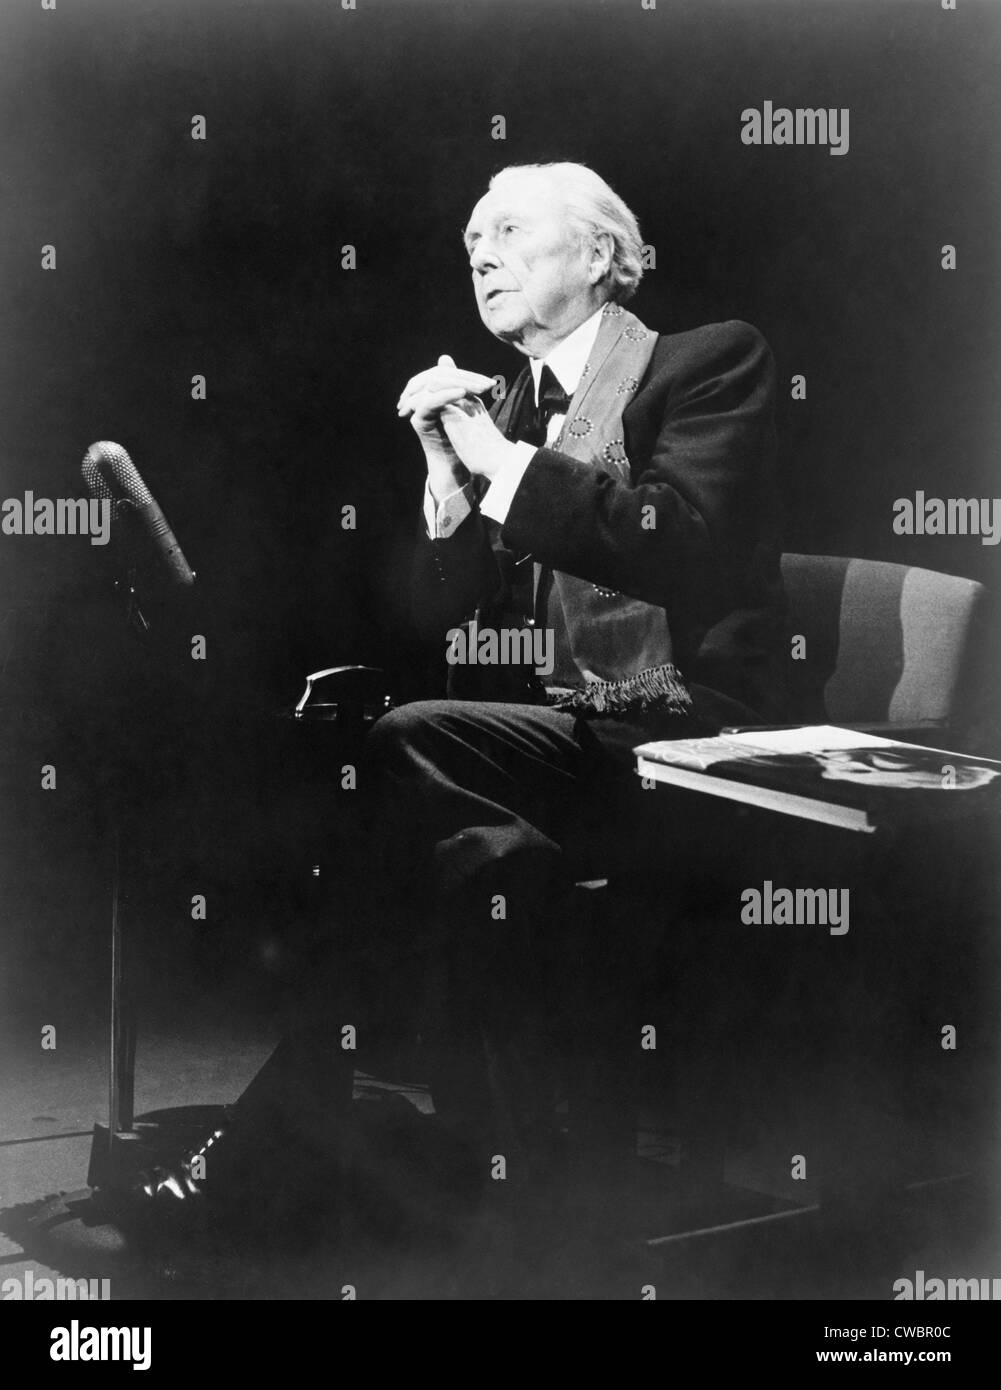 Frank Lloyd Wright (1867-1959), in an expressive pose, during THE MIKE WALLACE INTEVIEW television program, 1957. - Stock Image